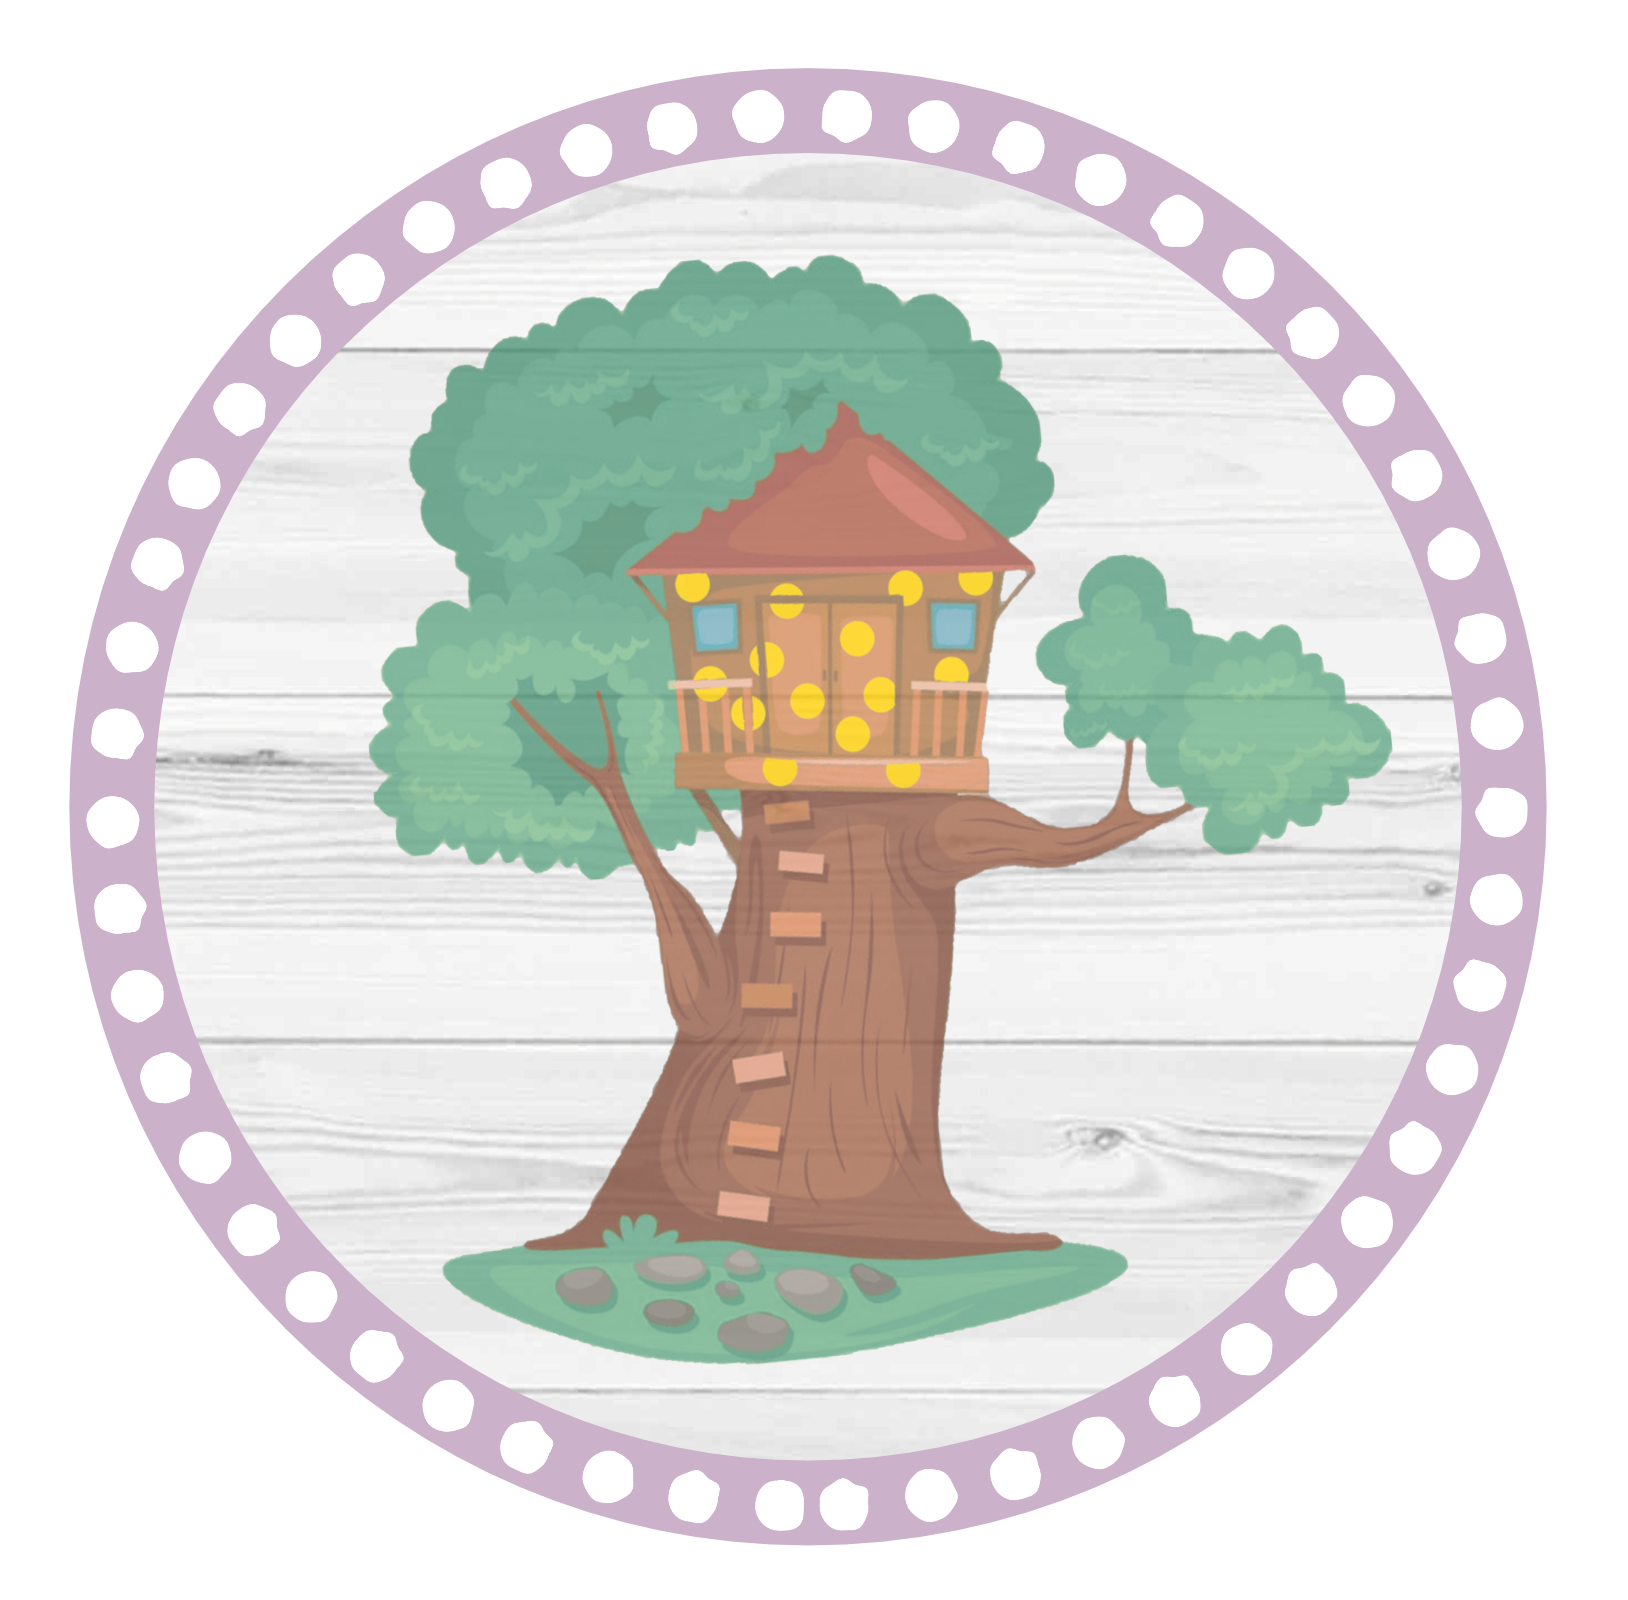 The Spotted Treehouse Logo